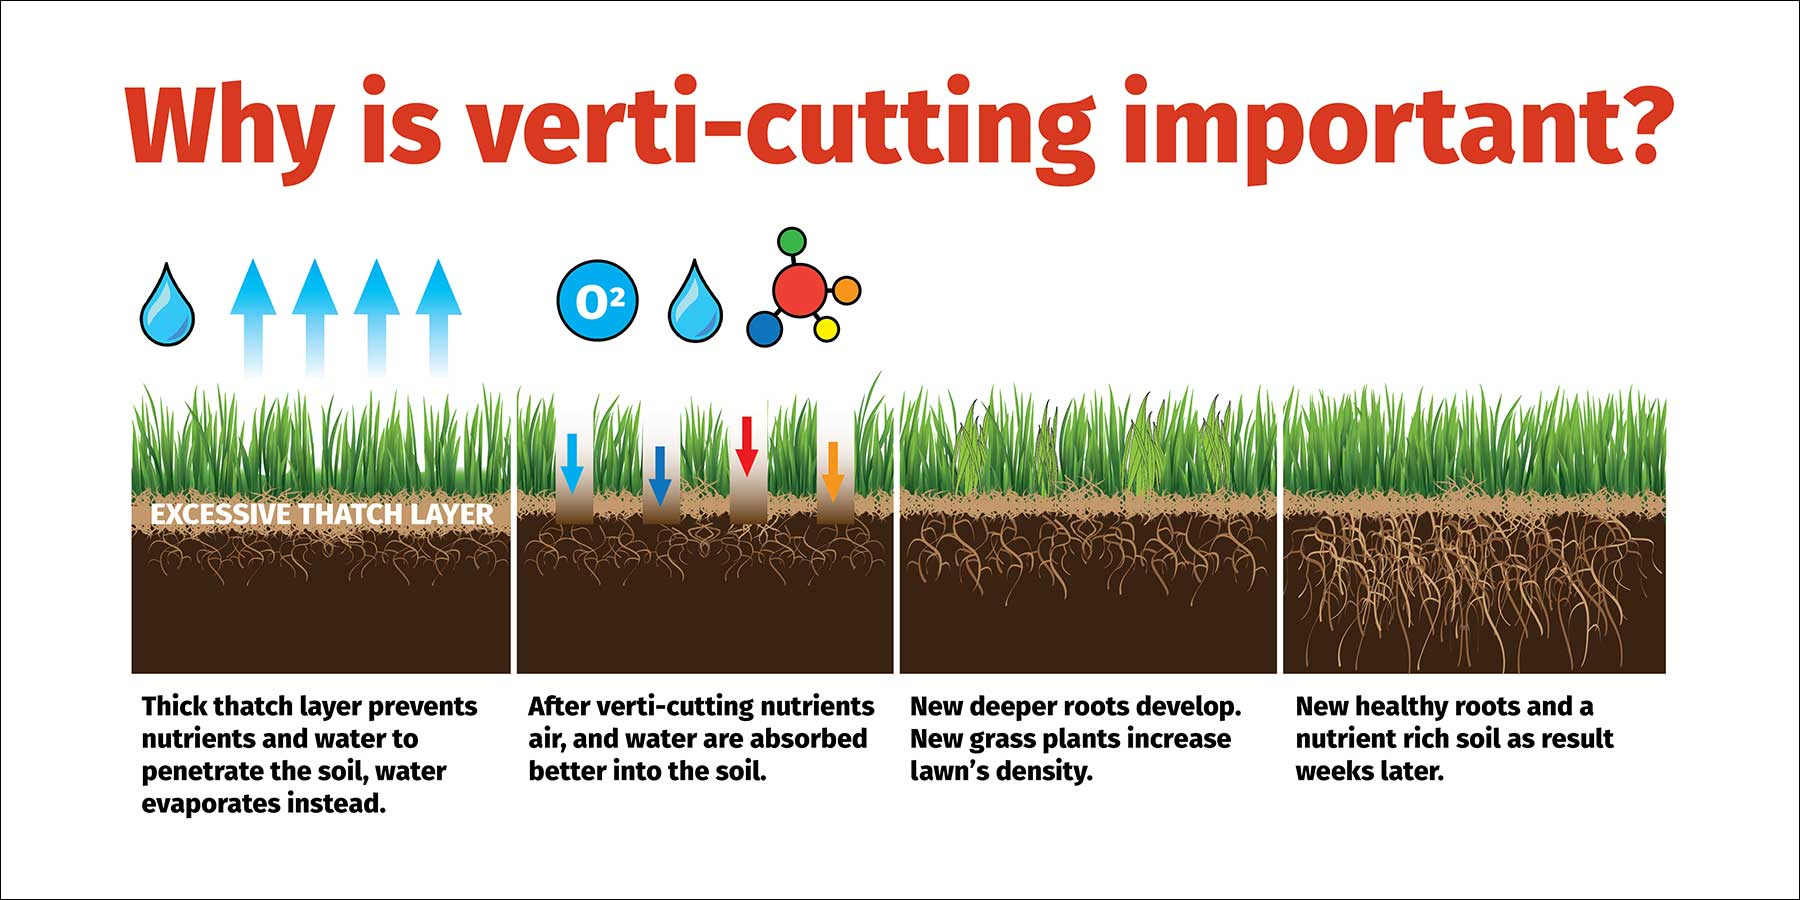 Why is verti-cutting important?